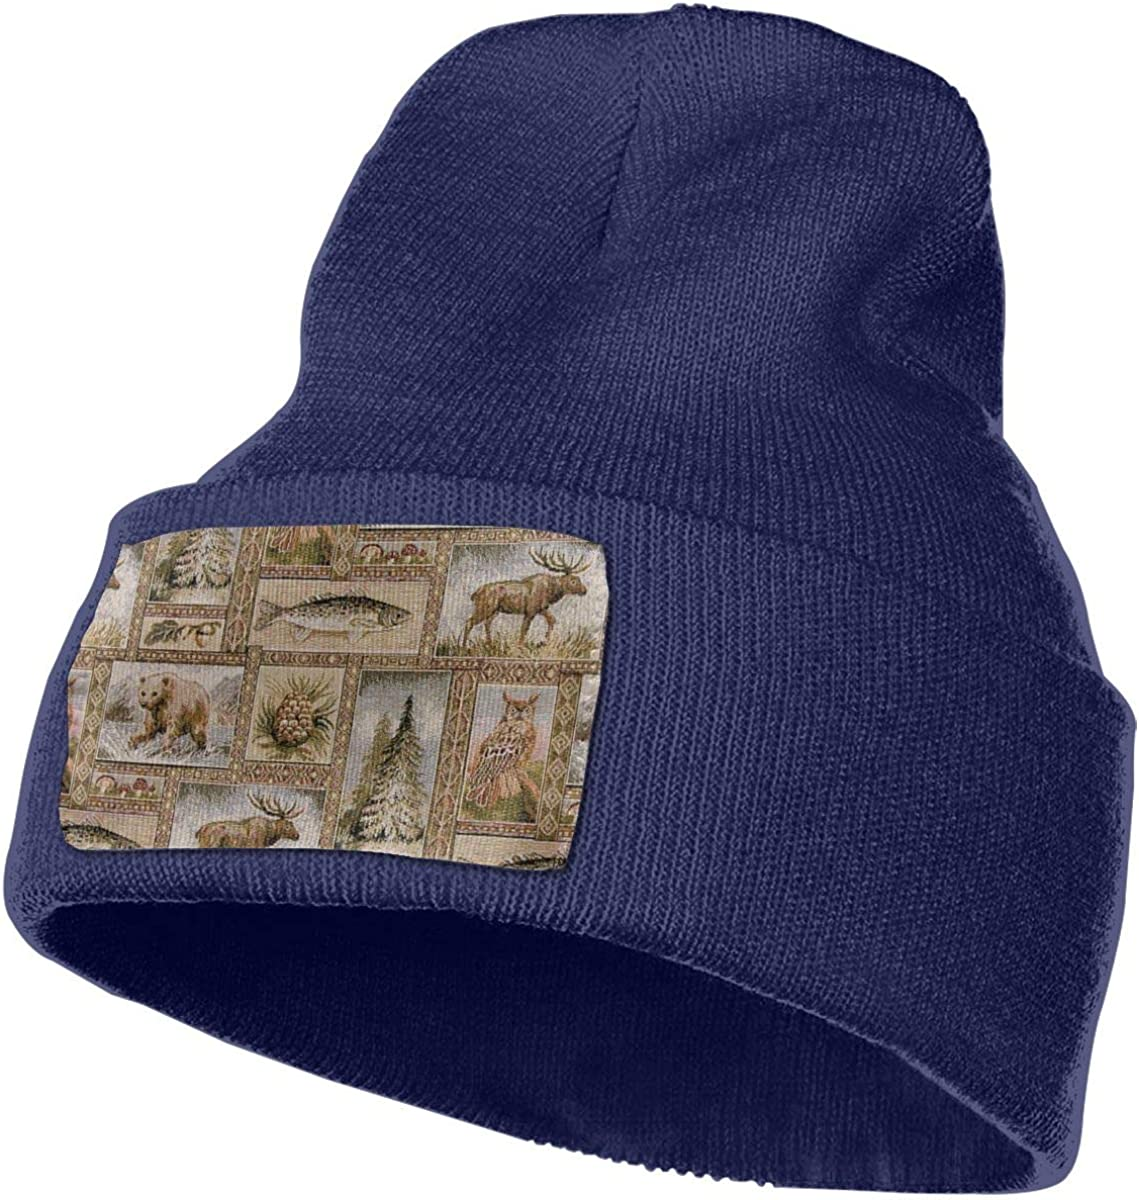 JimHappy Rustic Wilderness Hat for Men and Women Winter Warm Hats Knit Slouchy Thick Skull Cap